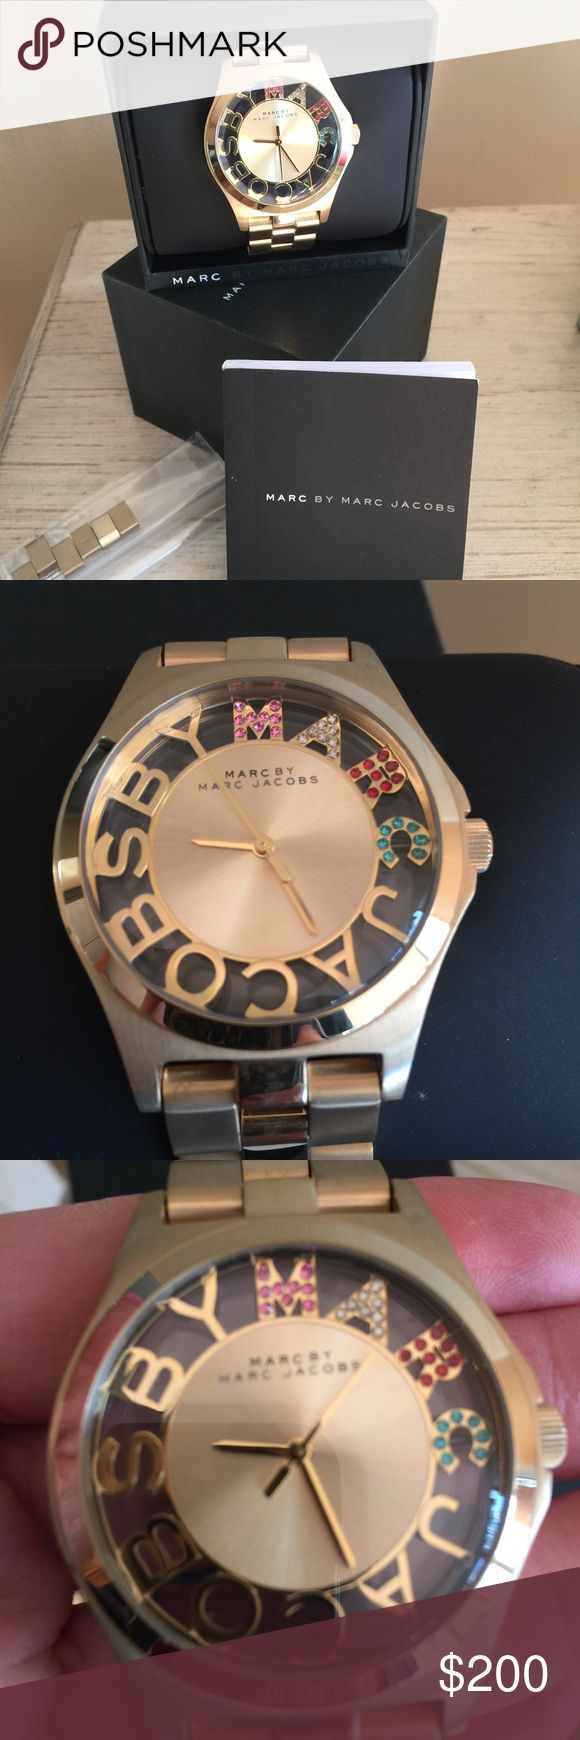 MARC BY MARC JACOBS SEE THROUGH WATCH Great watch with colored crystals. Extra links and original box. New battery. Marc by Marc Jacobs Accessories Watches